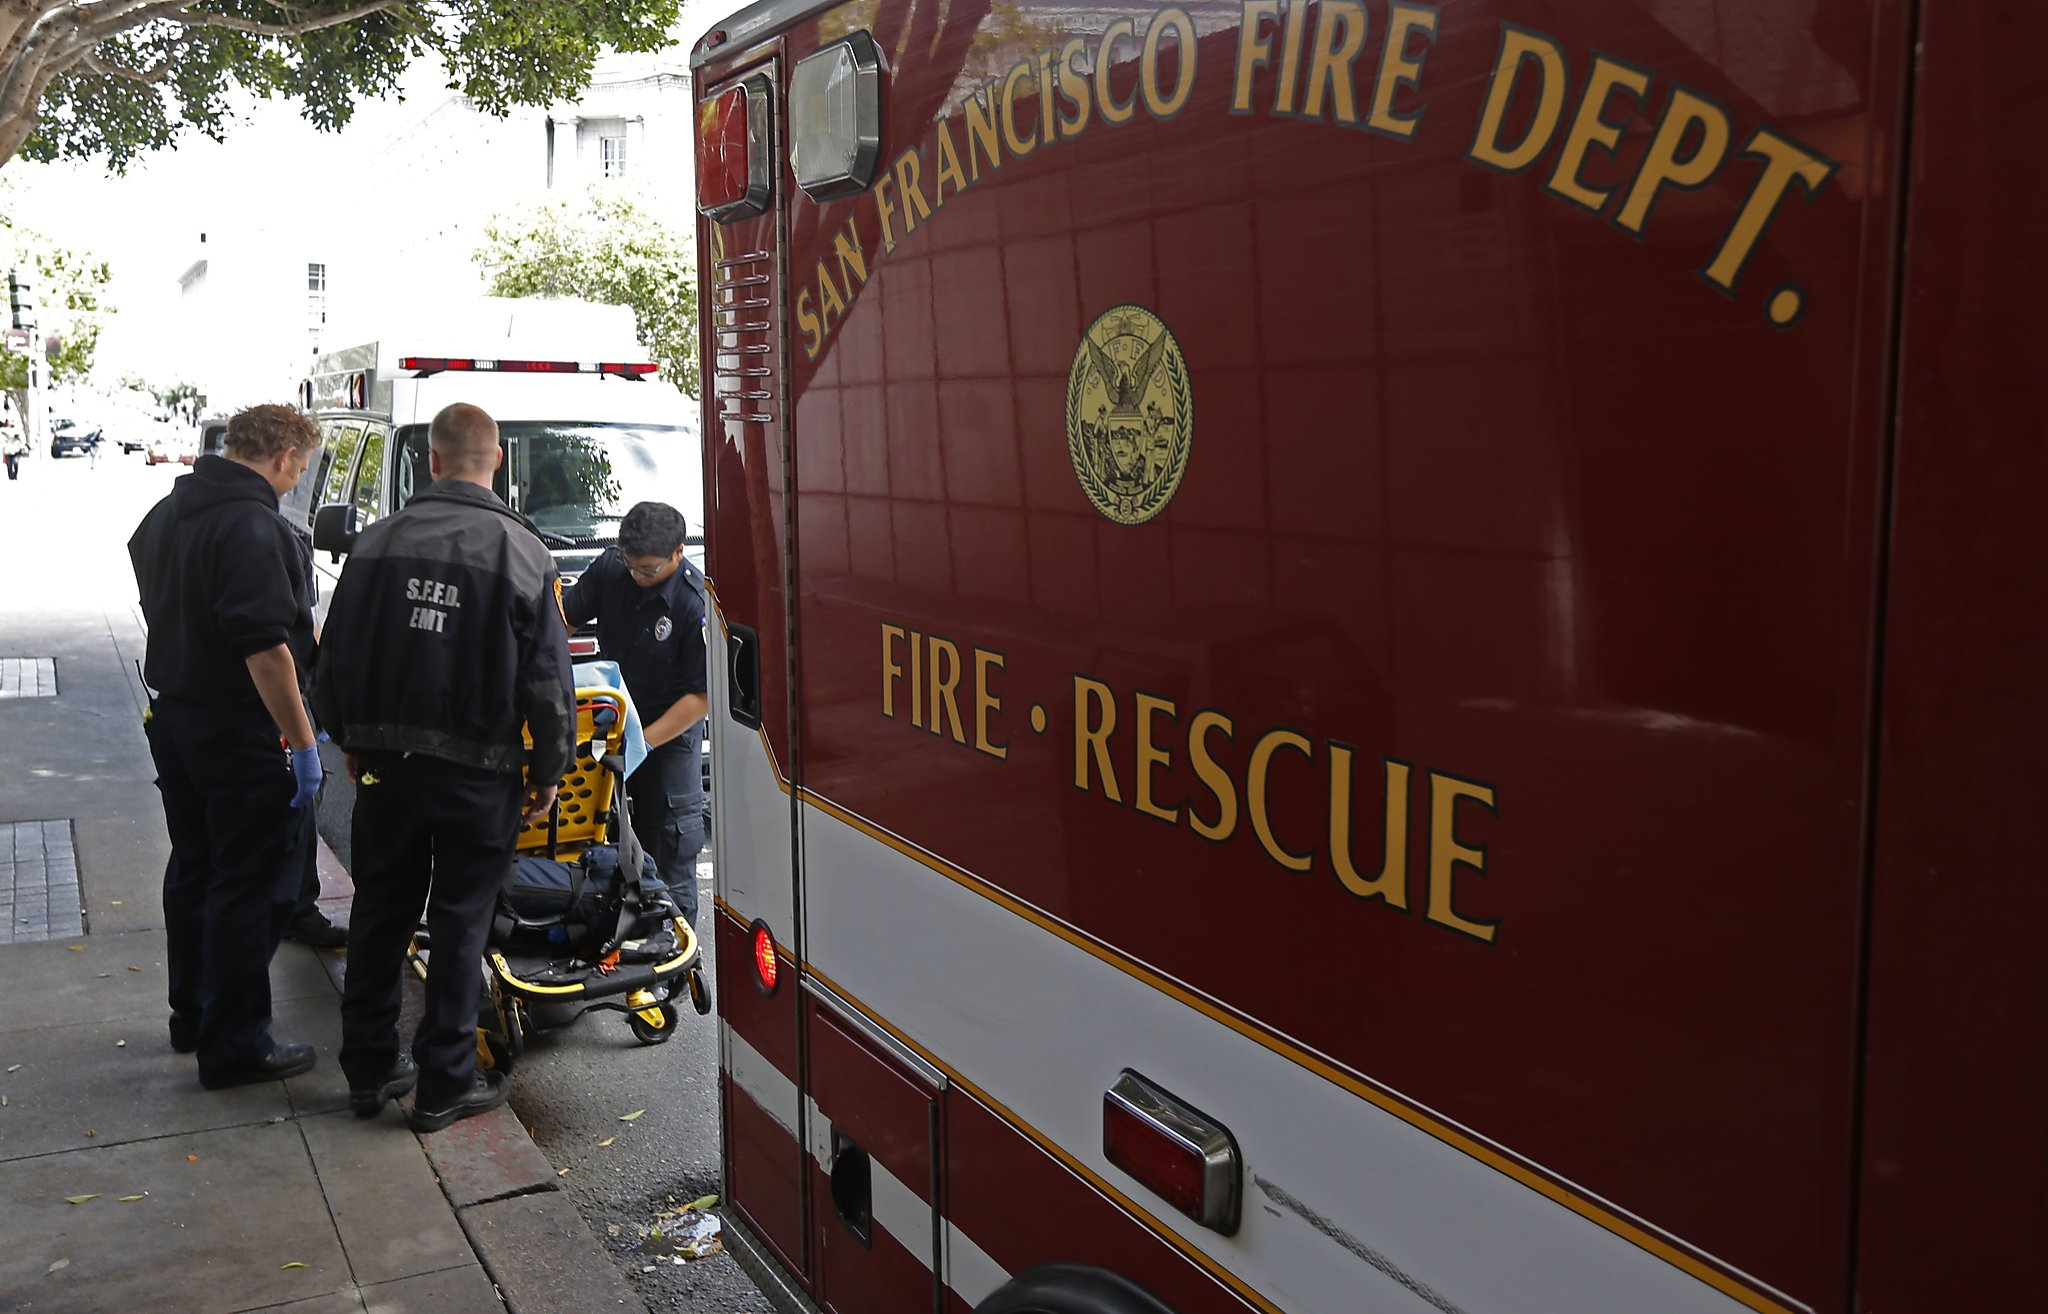 S F  supervisor says Fire Department puts public safety at